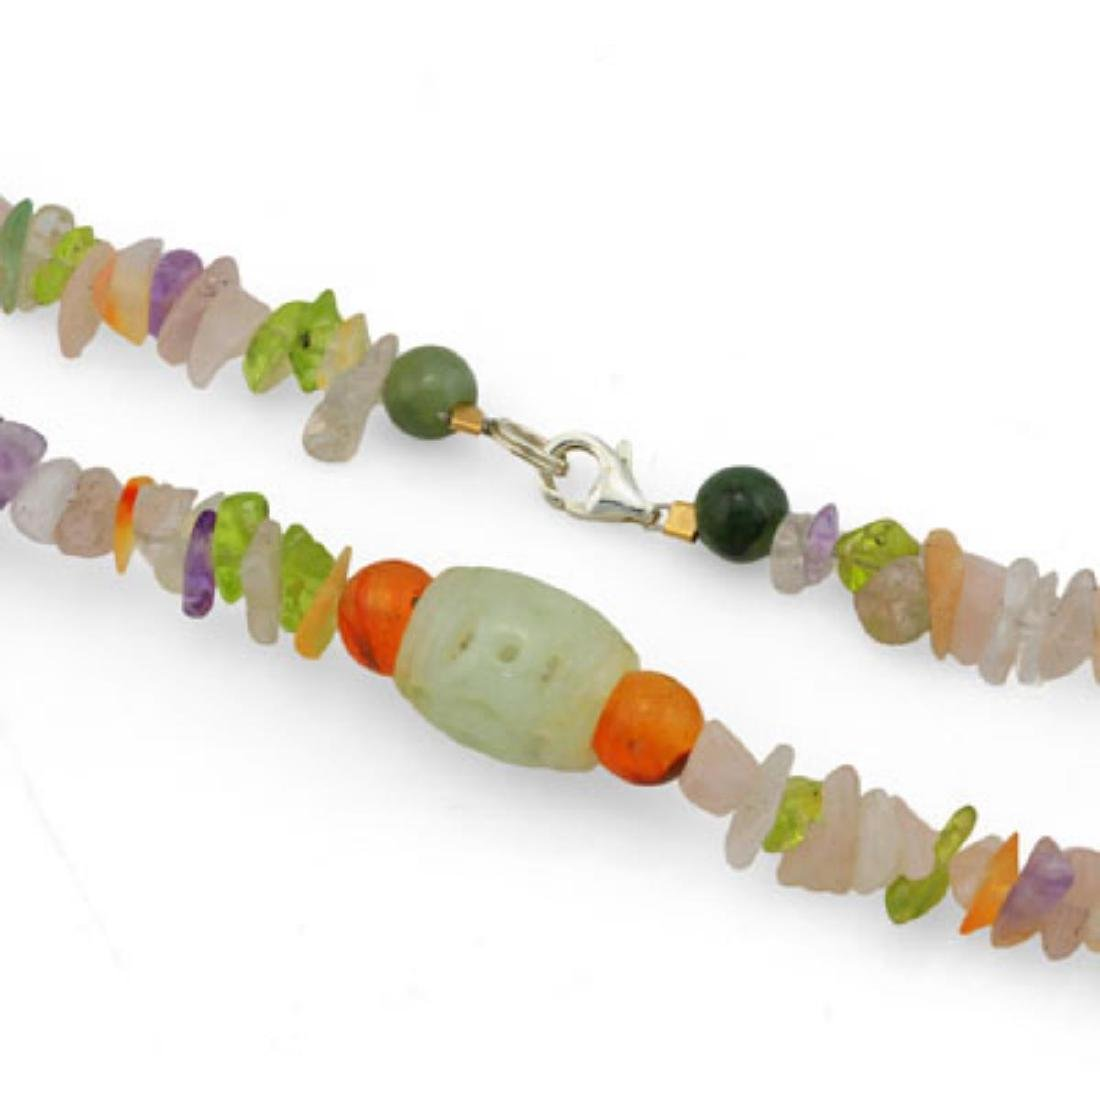 Natural Jade Pendant & Gemstone beads 150 cts Necklace - 2